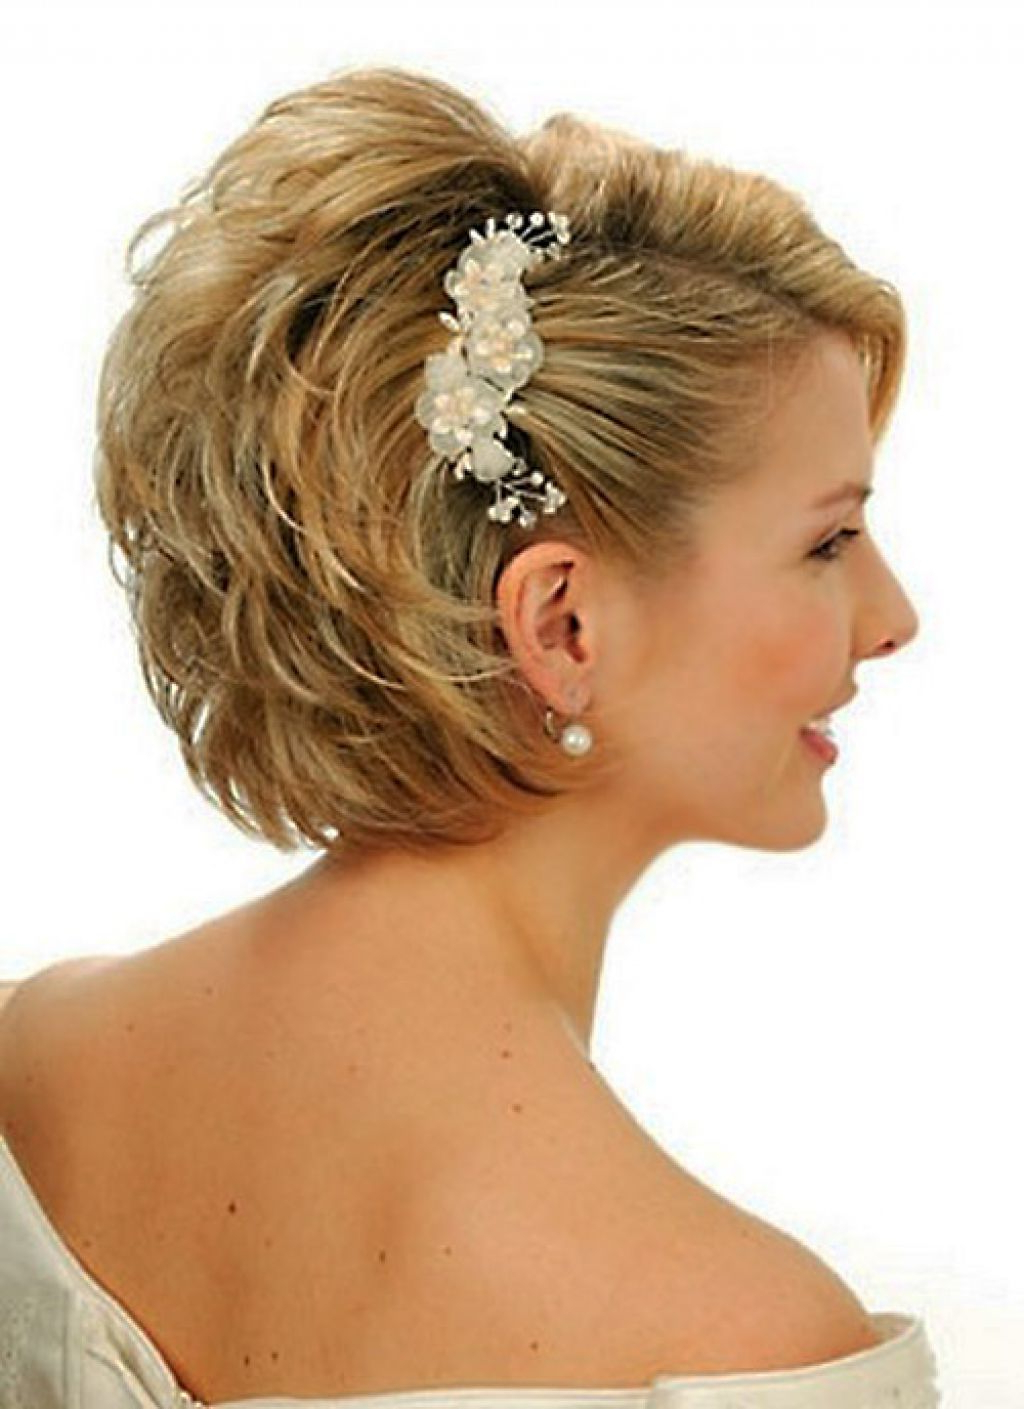 25 Most Favorite Wedding Hairstyles For Short Hair – The Xerxes For Hairstyles For Short Hair Wedding (View 12 of 25)